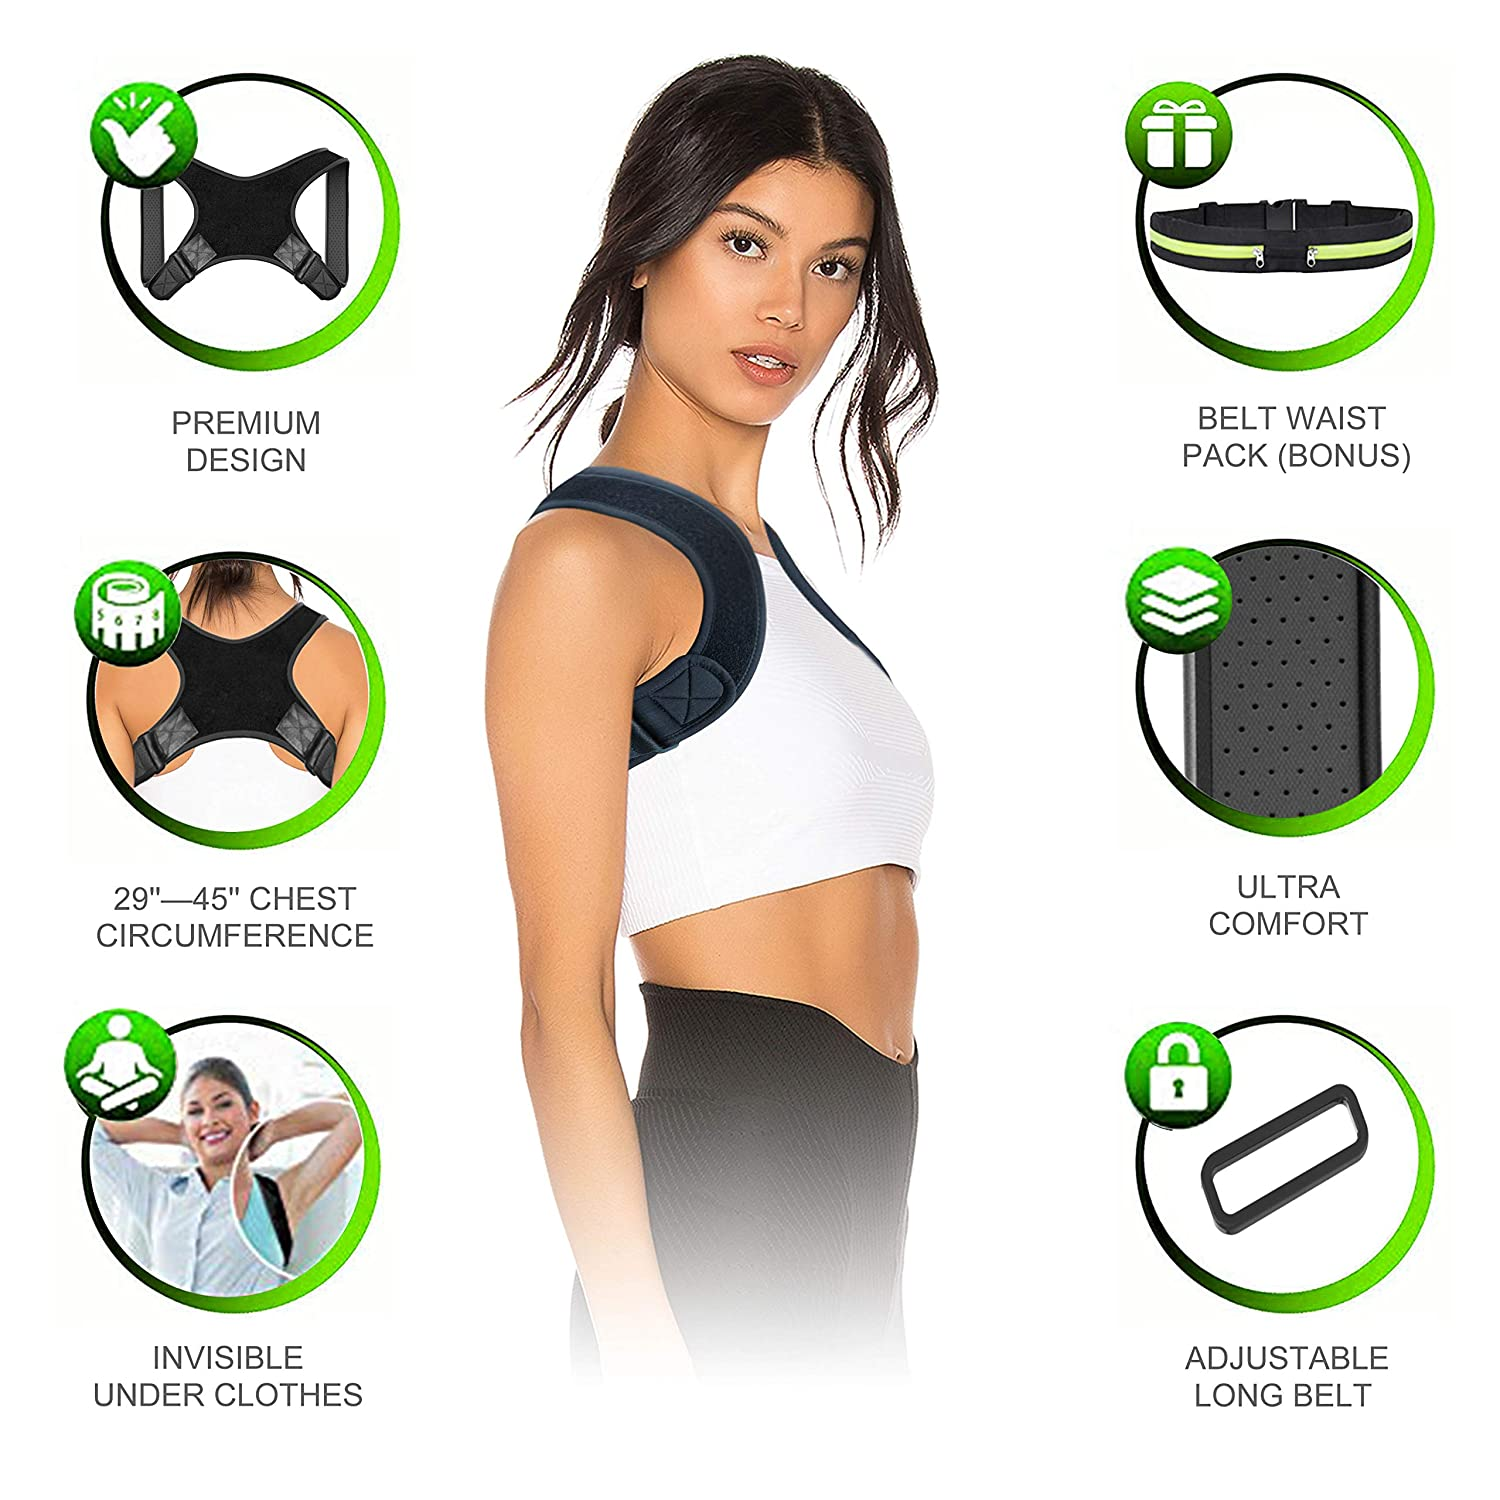 Posture Corrector for Women /& Men Adjustable and Comfortable Clavicle Brace FDA Approved Posture Fixer 2019 New version Amdieu Back Brace for Perfect Posture